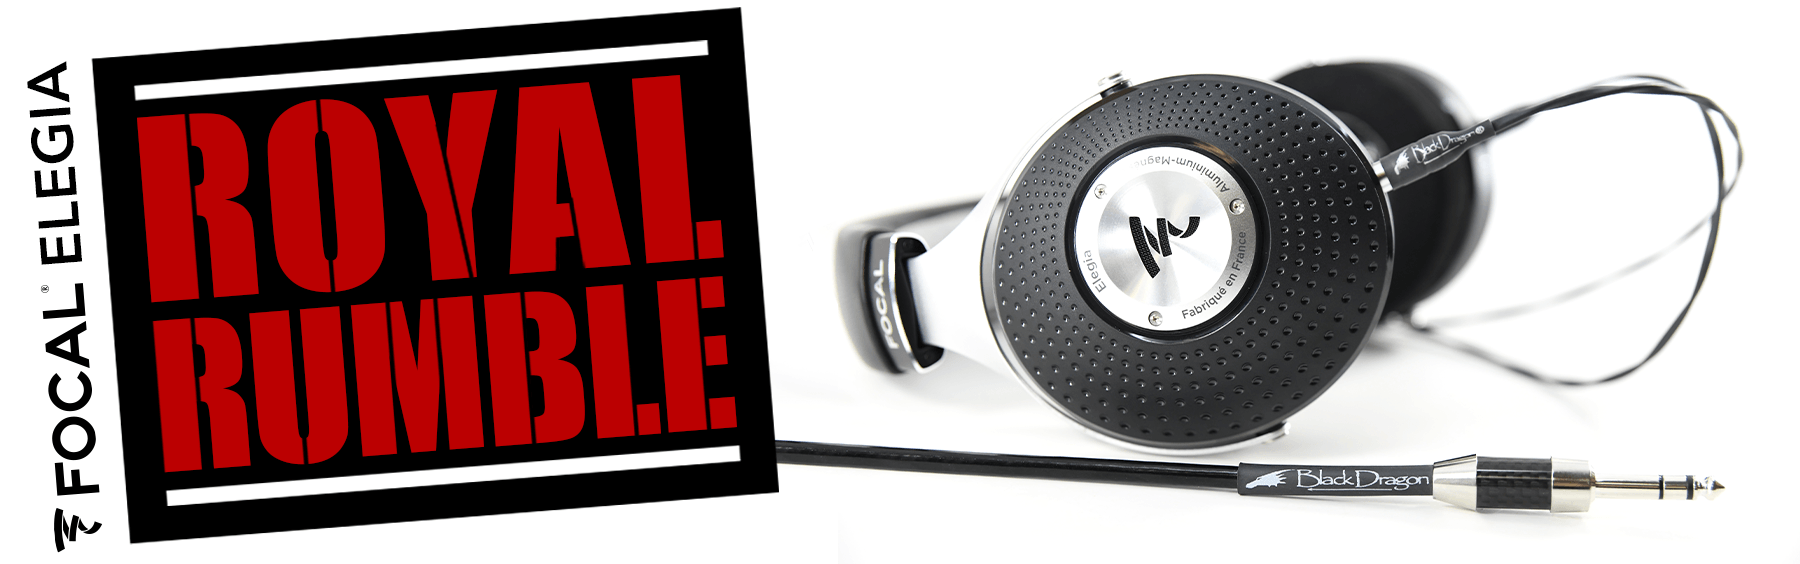 Graphic art for Focal Elegia royal rumble headphone review and a Black Dragon premium headphone cable.